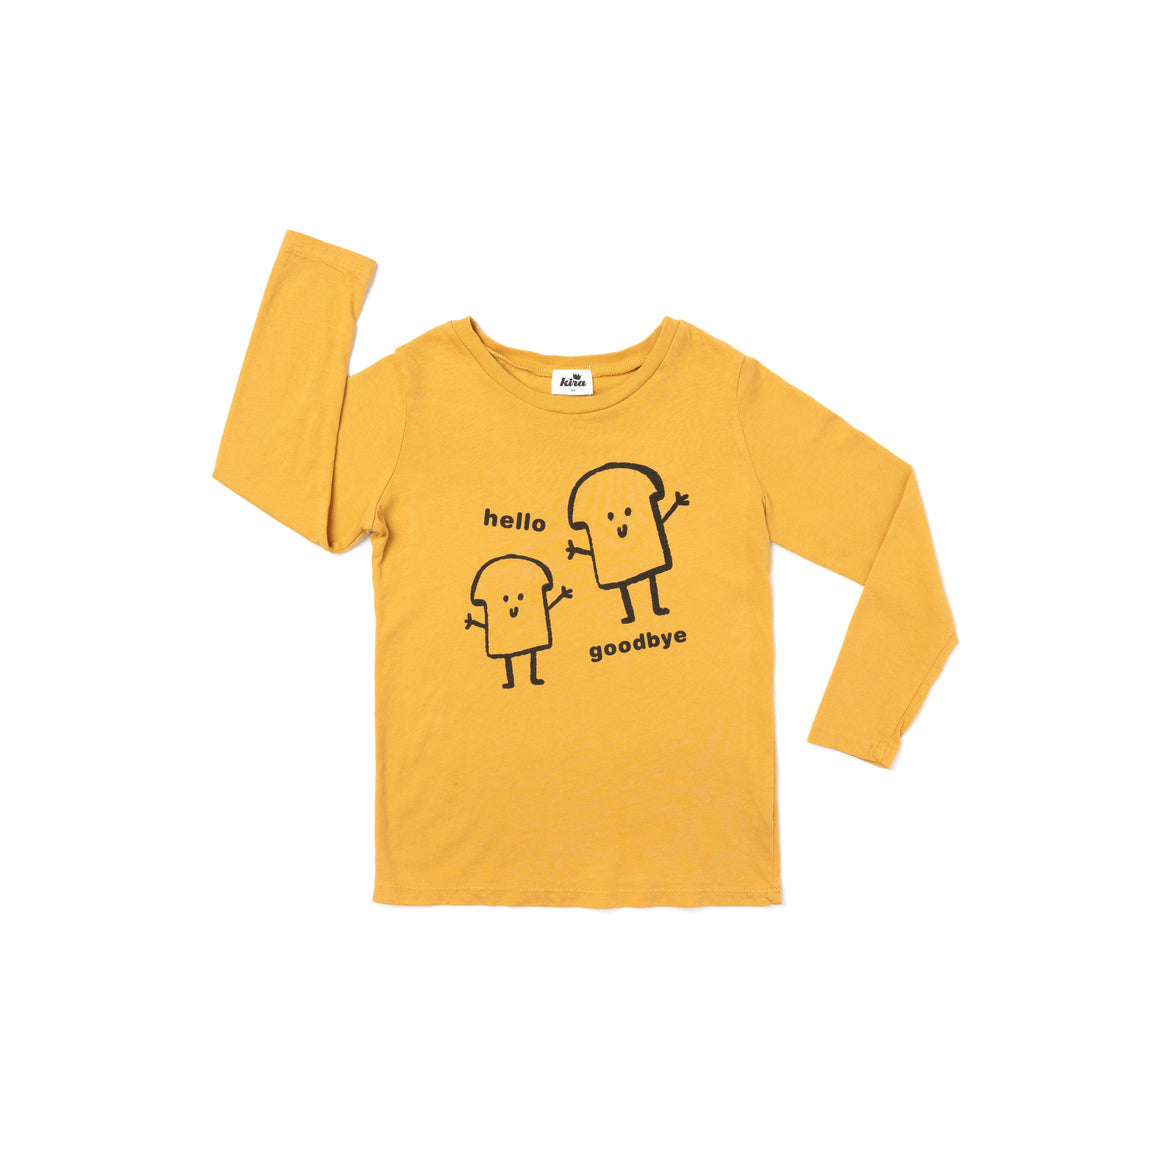 Bread Guys Graphic T-shirt, Long Sleeve, Golden